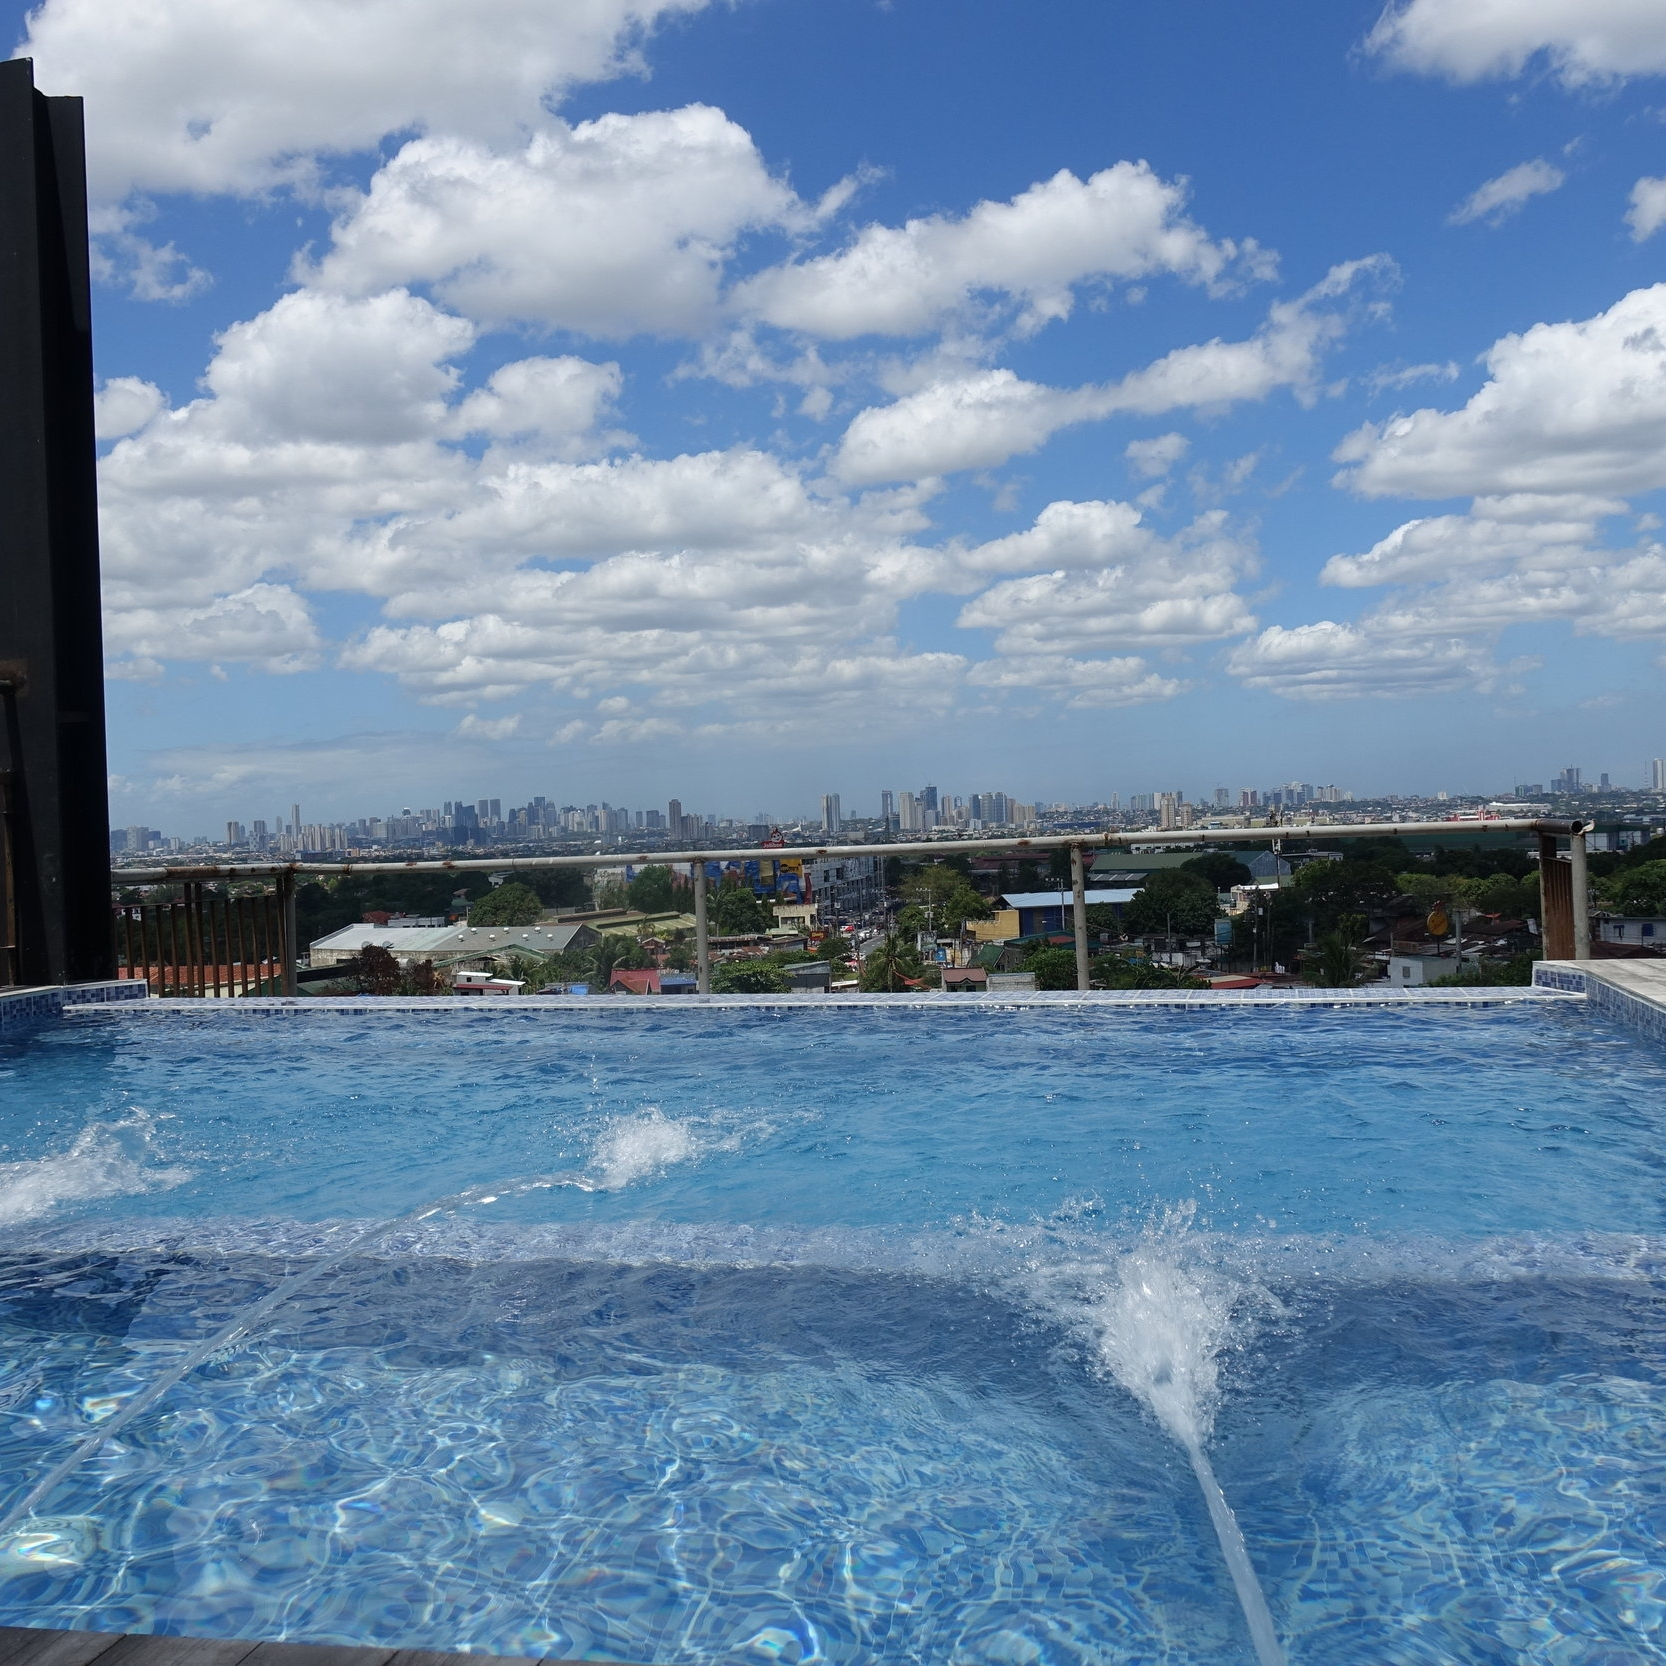 Infinity Pool - Use of Infinity Pool is FREE for guests who booked a room. :)